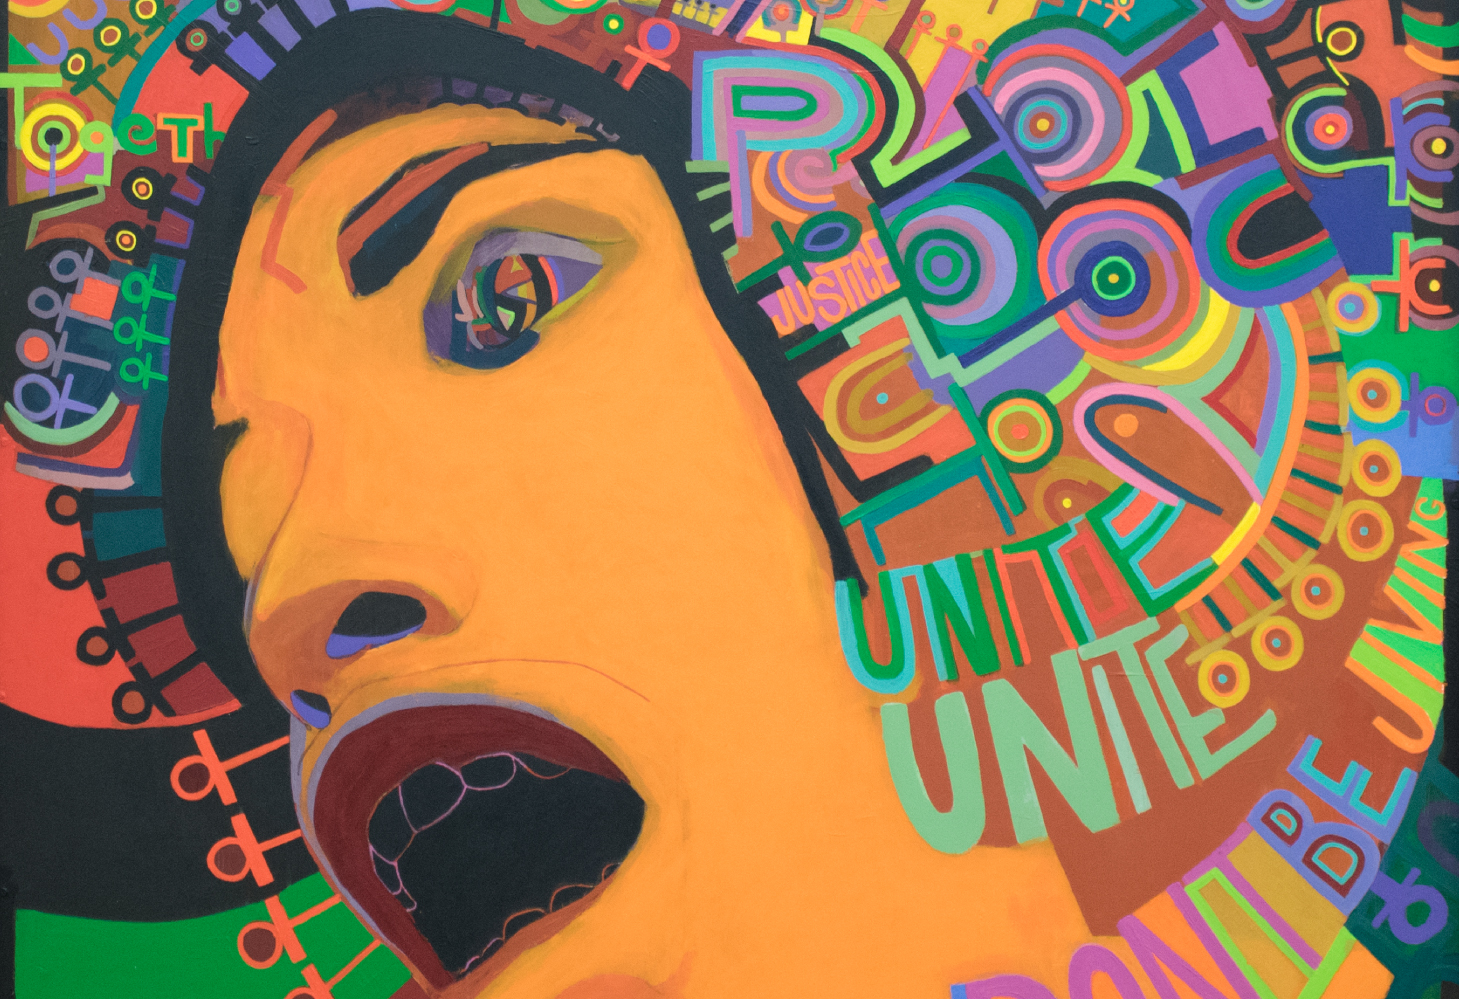 Art from the black power movement to #blacklivesmatter